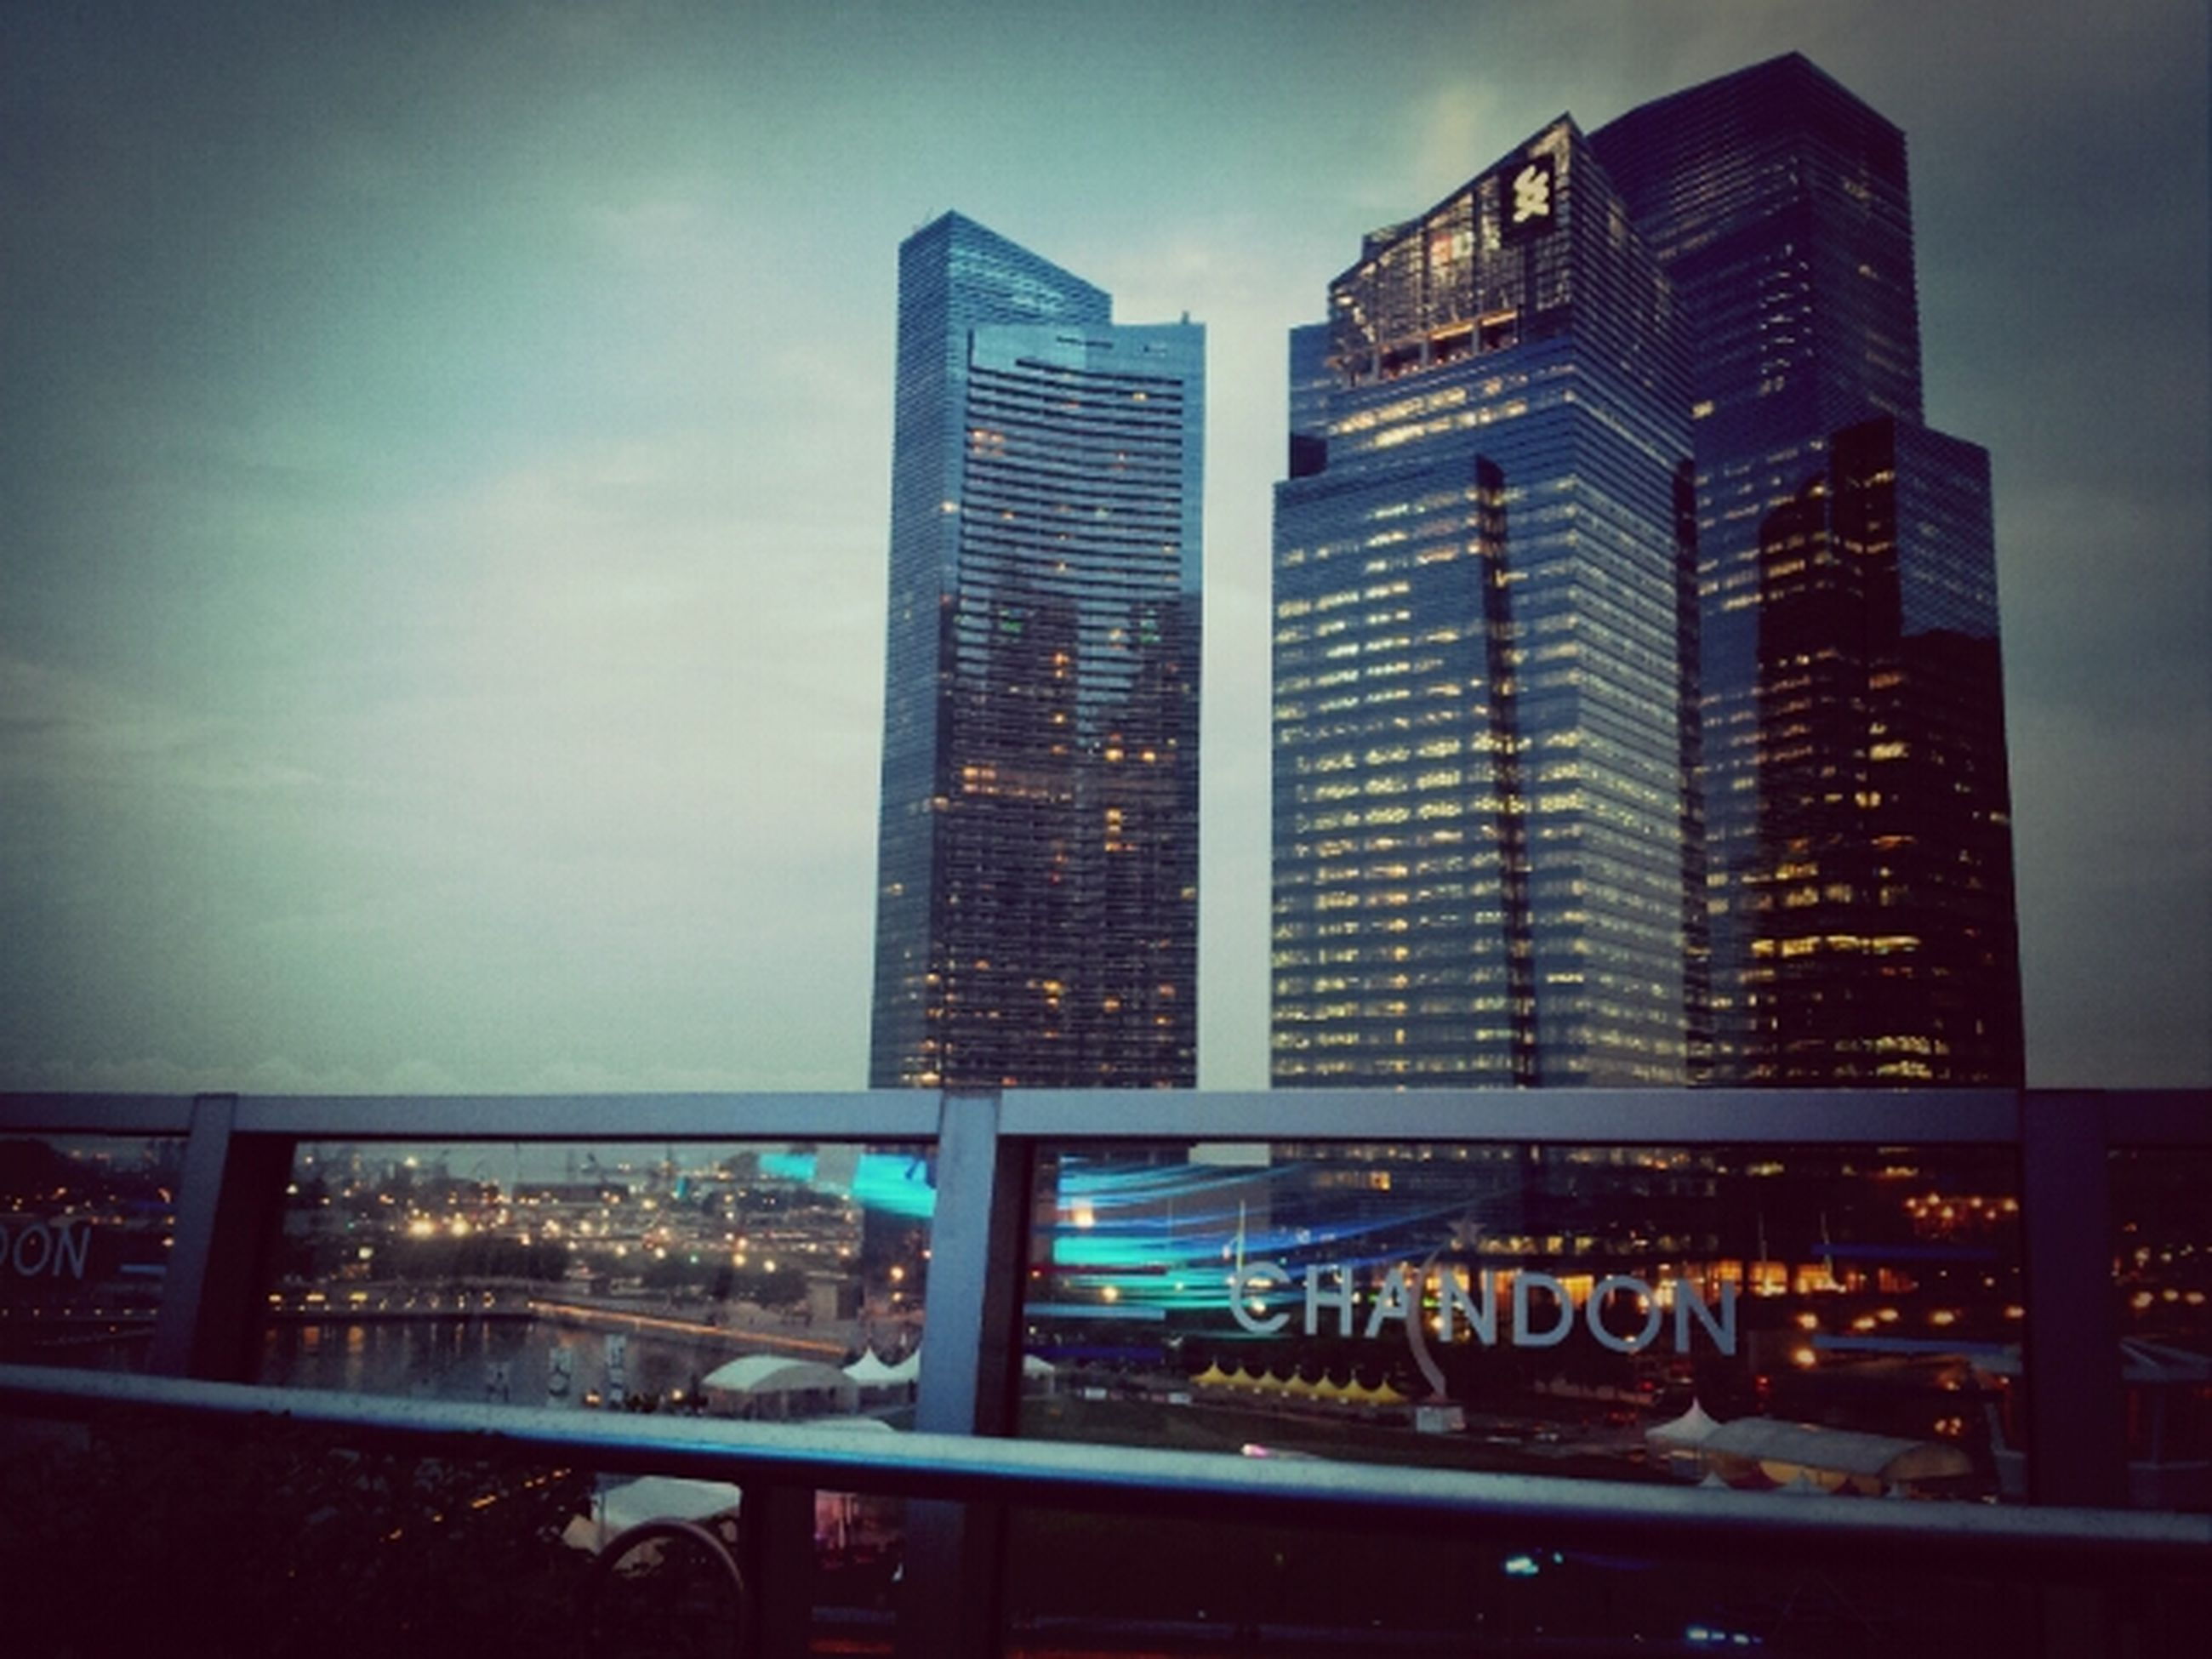 building exterior, architecture, city, built structure, skyscraper, sky, modern, office building, illuminated, cityscape, building, city life, glass - material, night, incidental people, tall - high, land vehicle, window, urban skyline, outdoors